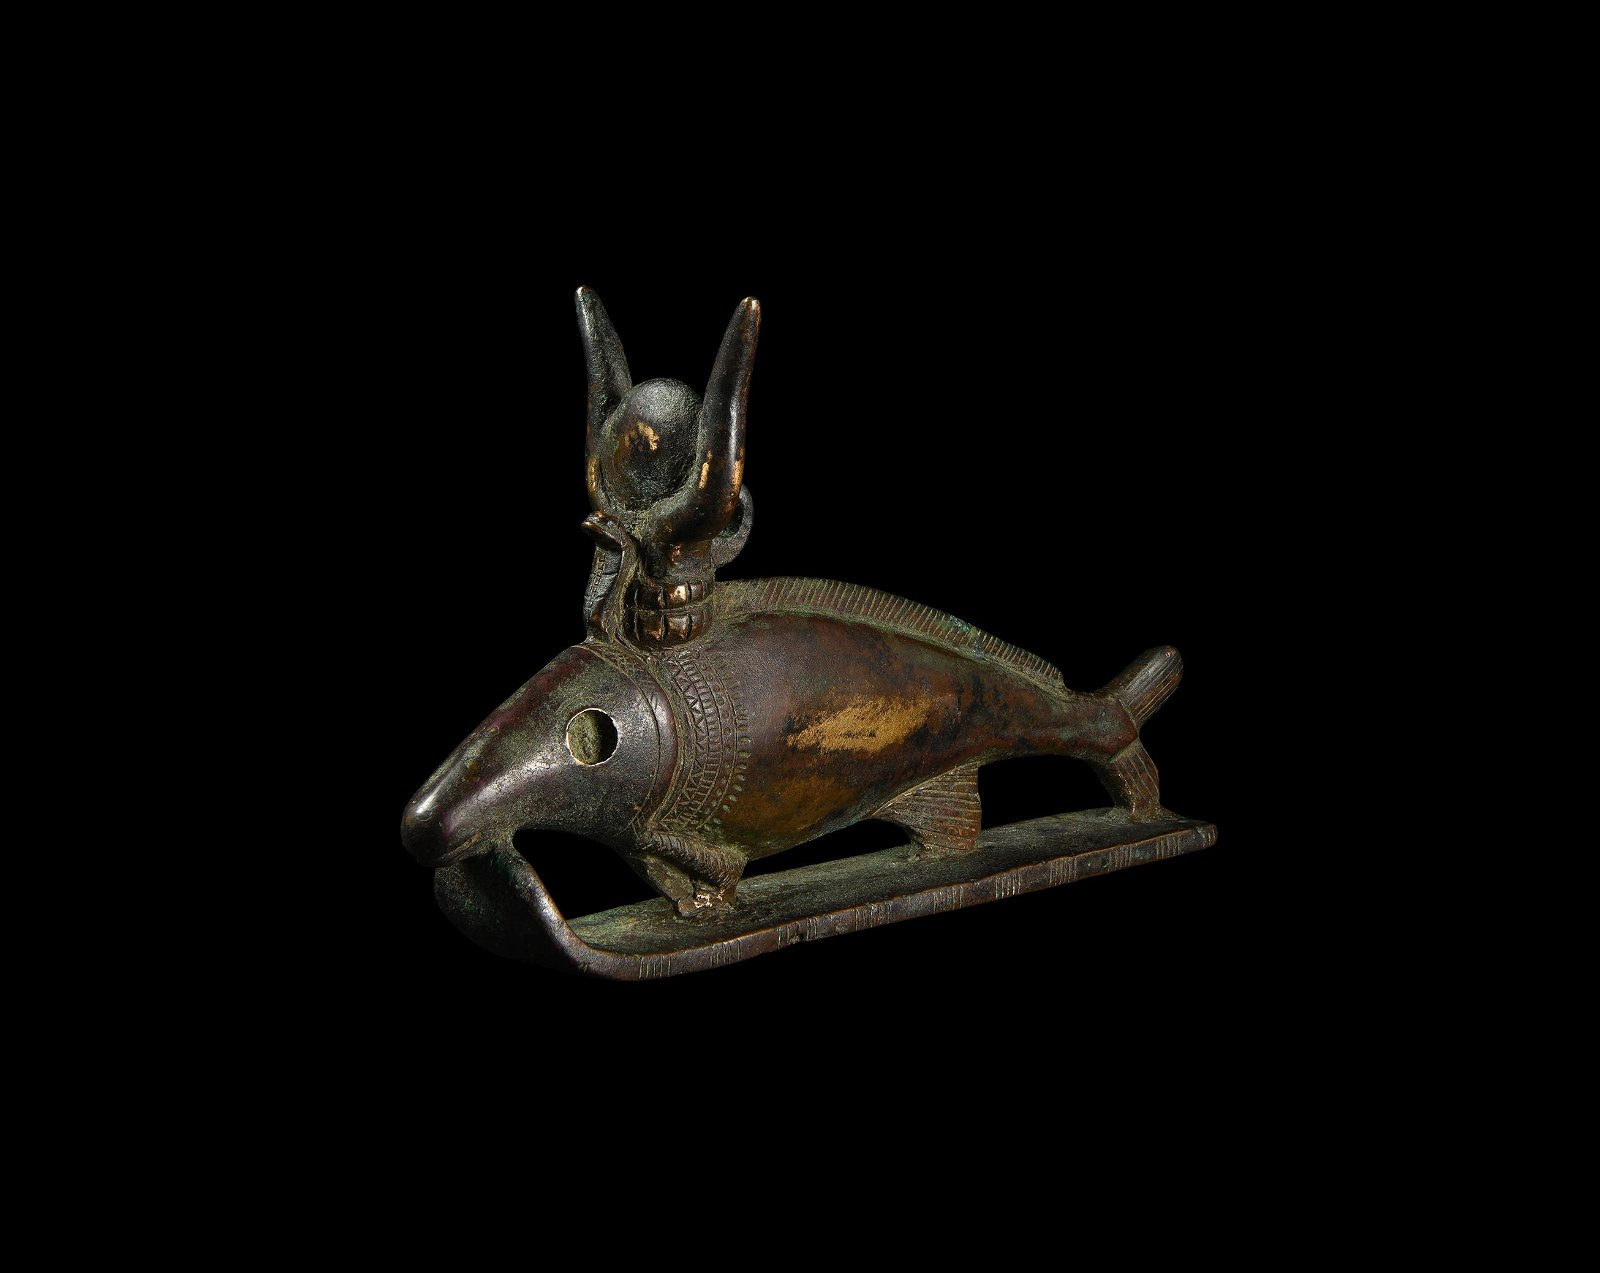 Exceptional Egyptian Oxyrhynchus Fish Statuette